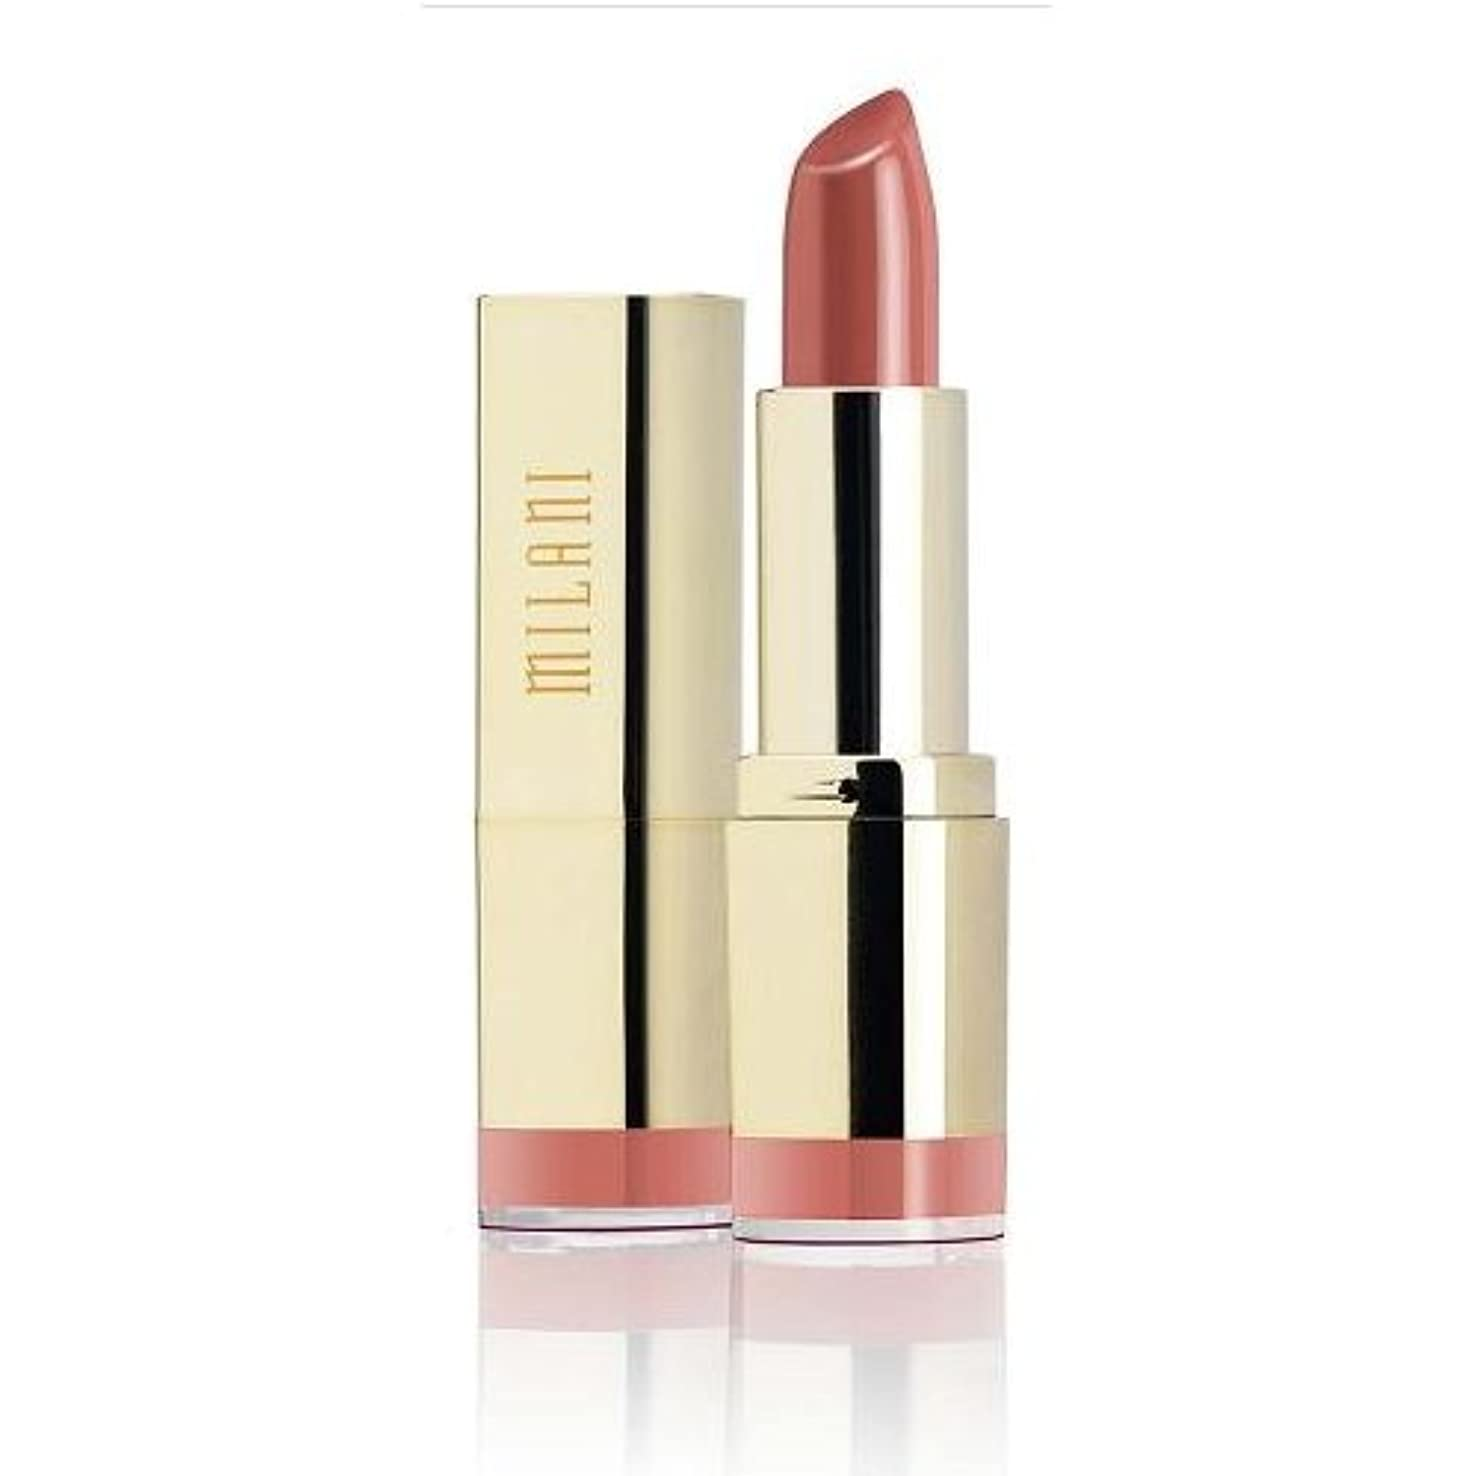 解任スタンド退屈させる(6 Pack) MILANI Color Statement Lipstick - Naturally Chic (並行輸入品)